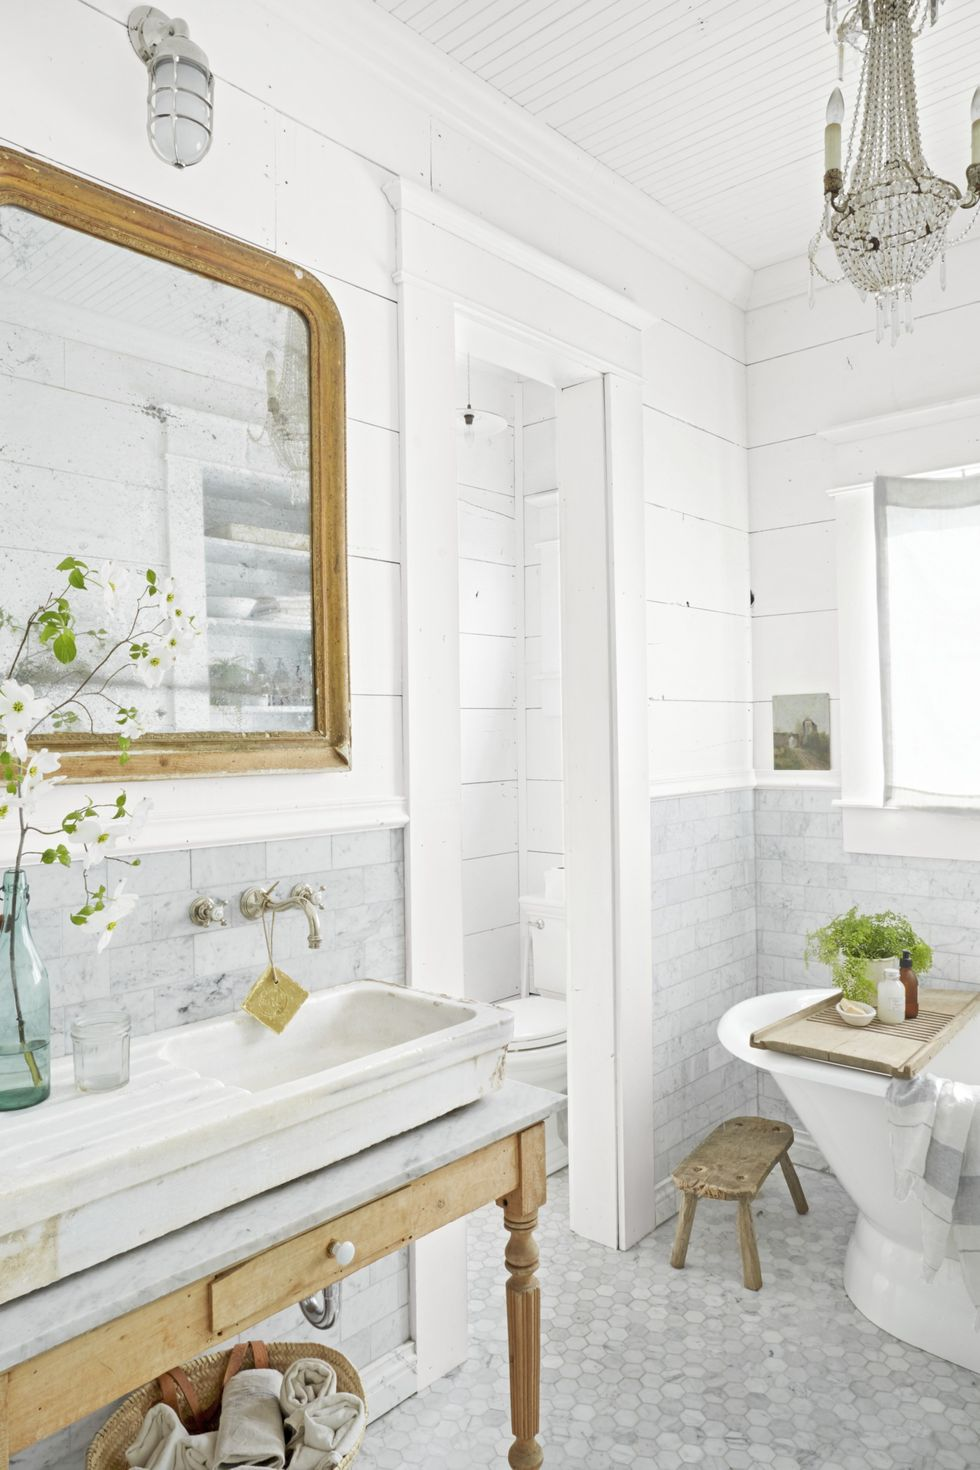 Create a Spa Bathroom Atmosphere + Detox Bath Recipe